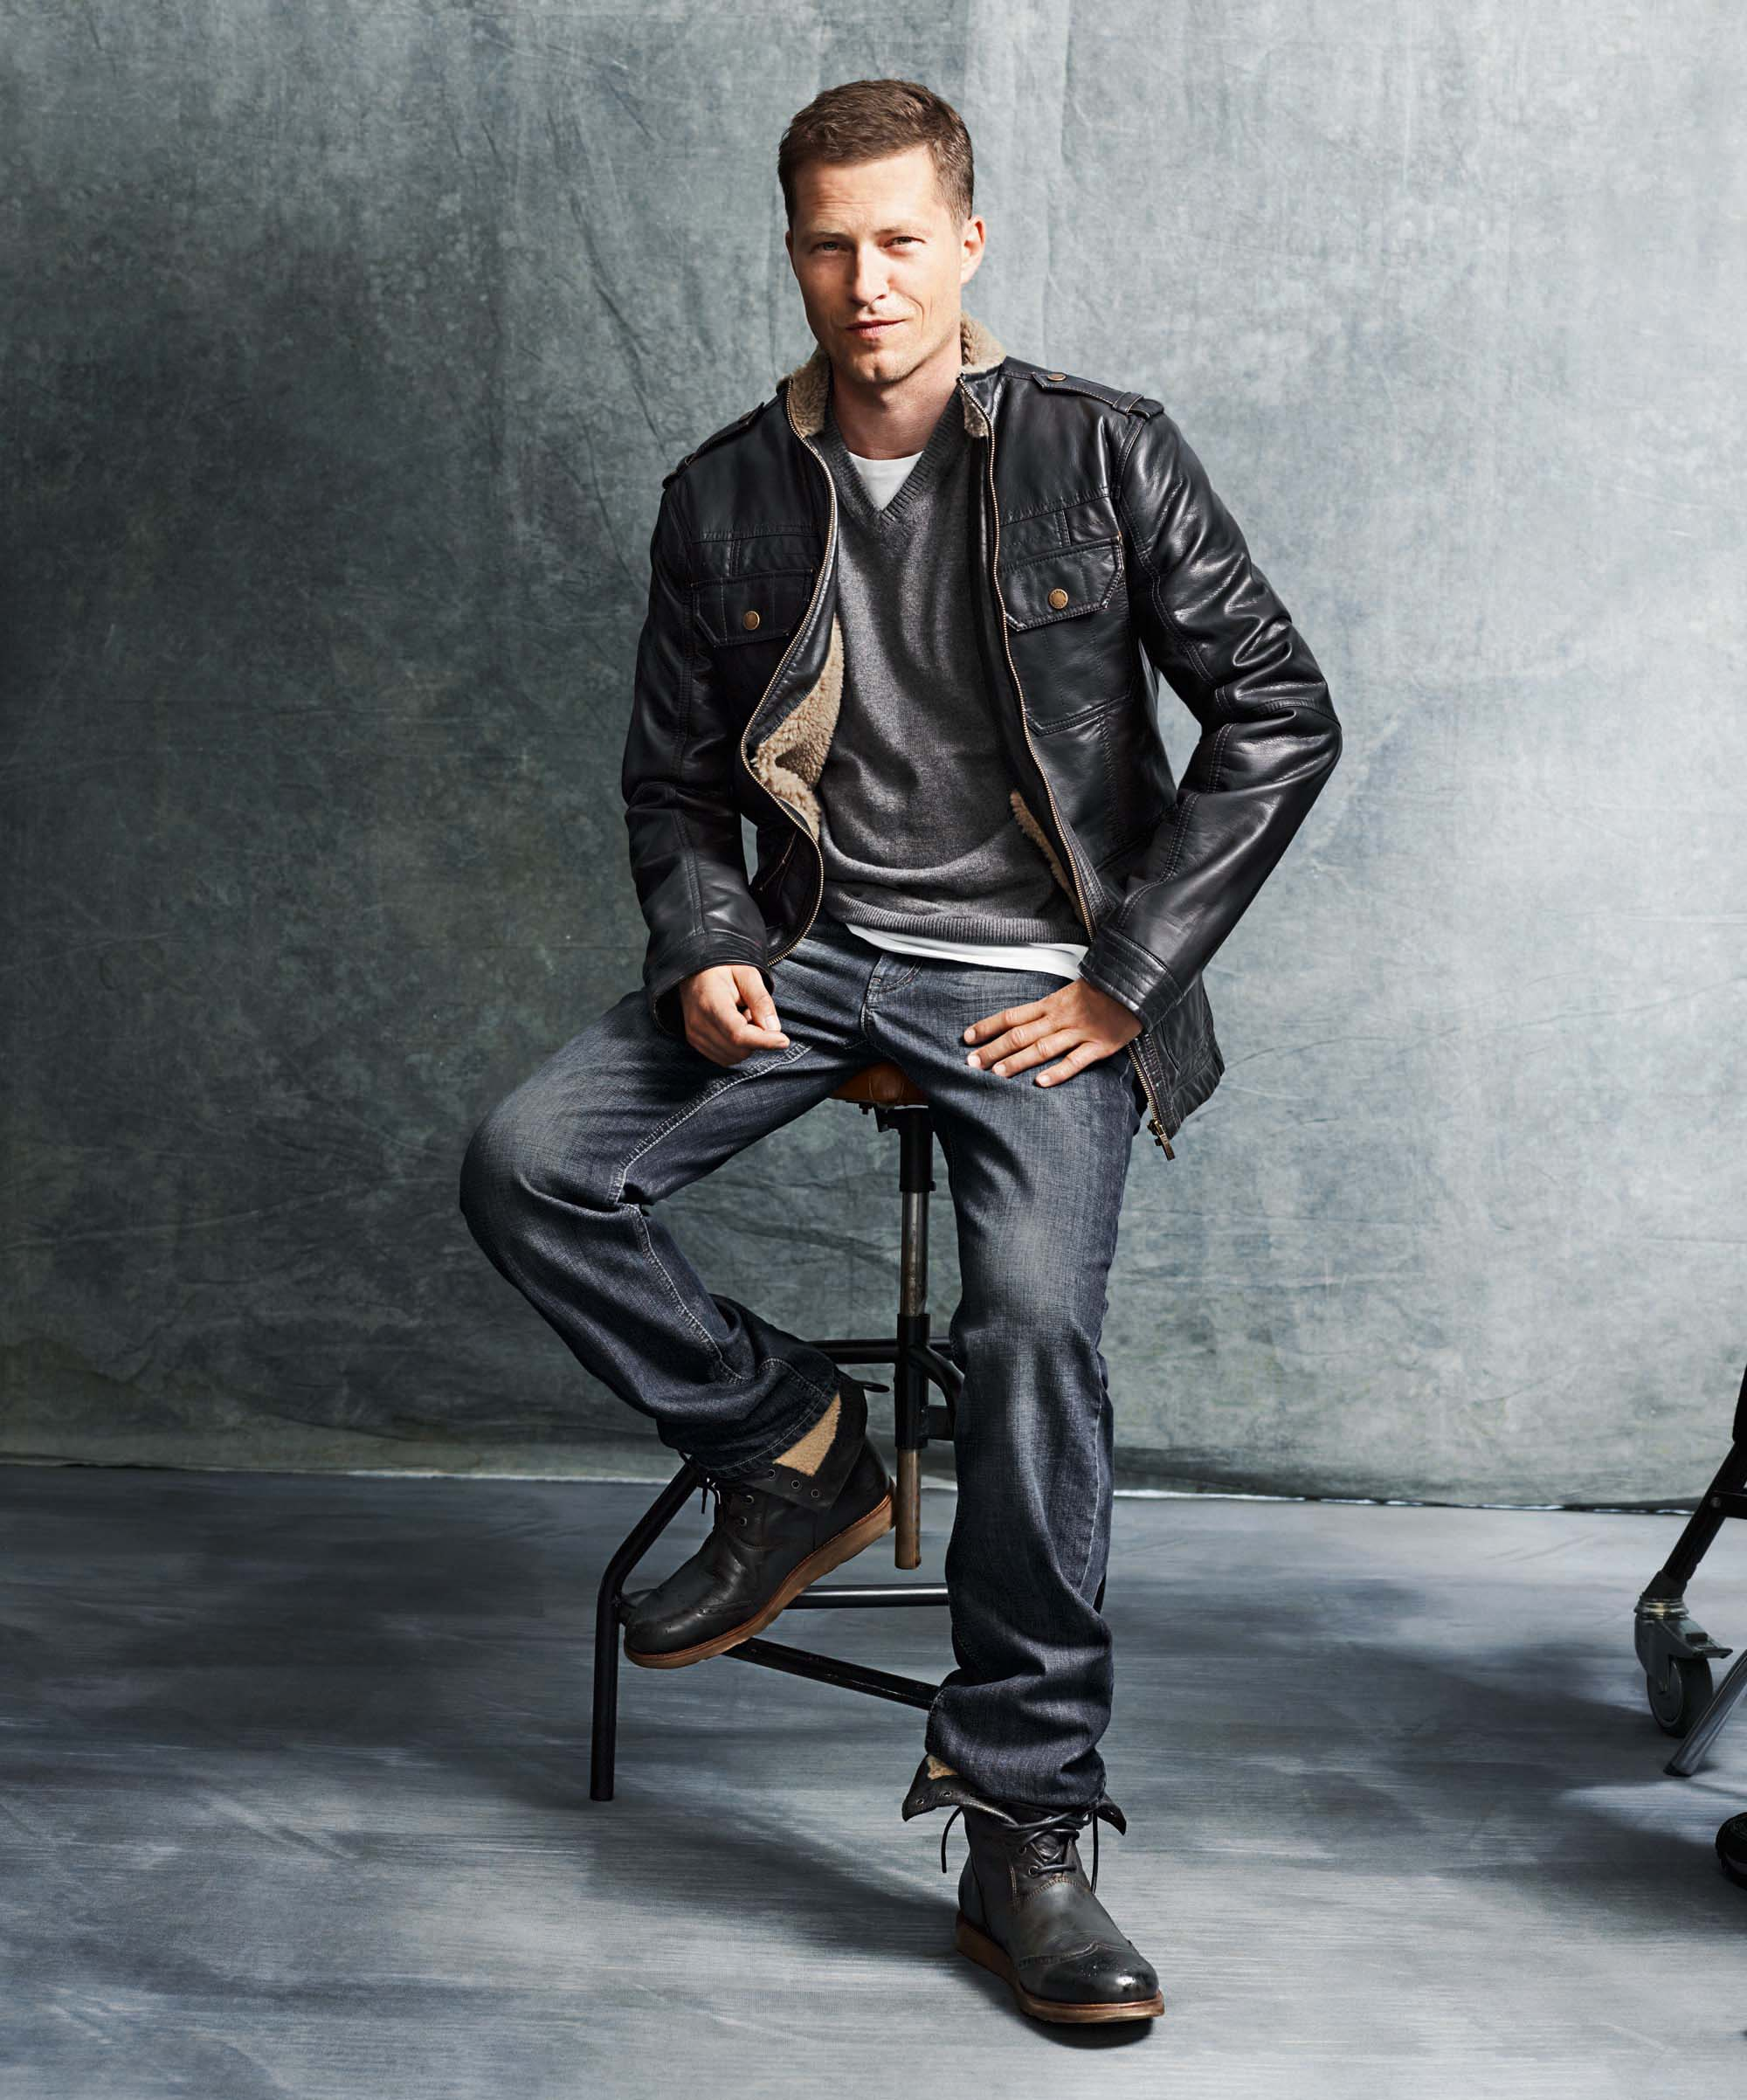 Til Schweiger photo 99 of 110 pics, wallpaper - photo #479982 - ThePlace2